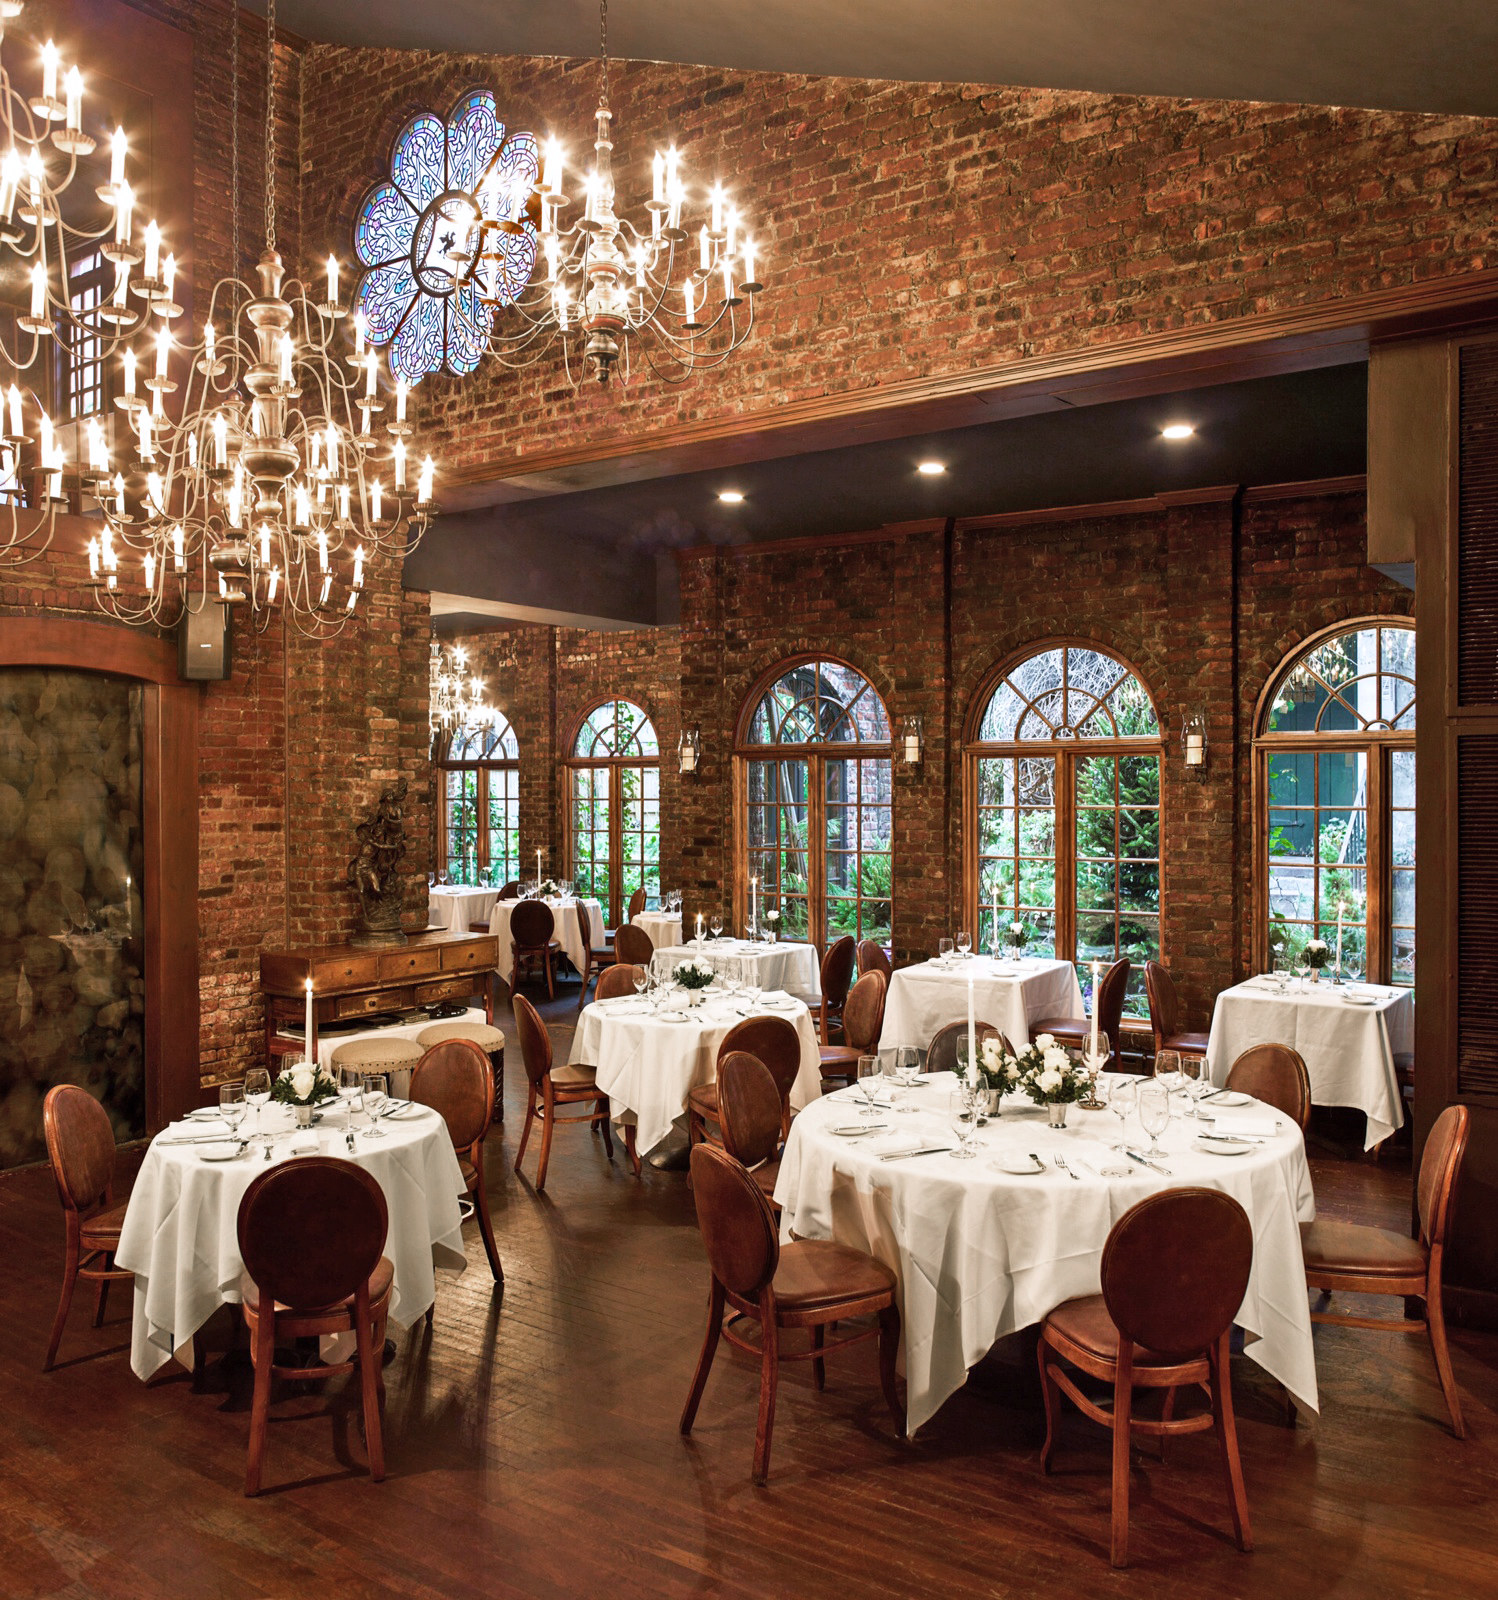 The Most Romantic Restaurants In The World